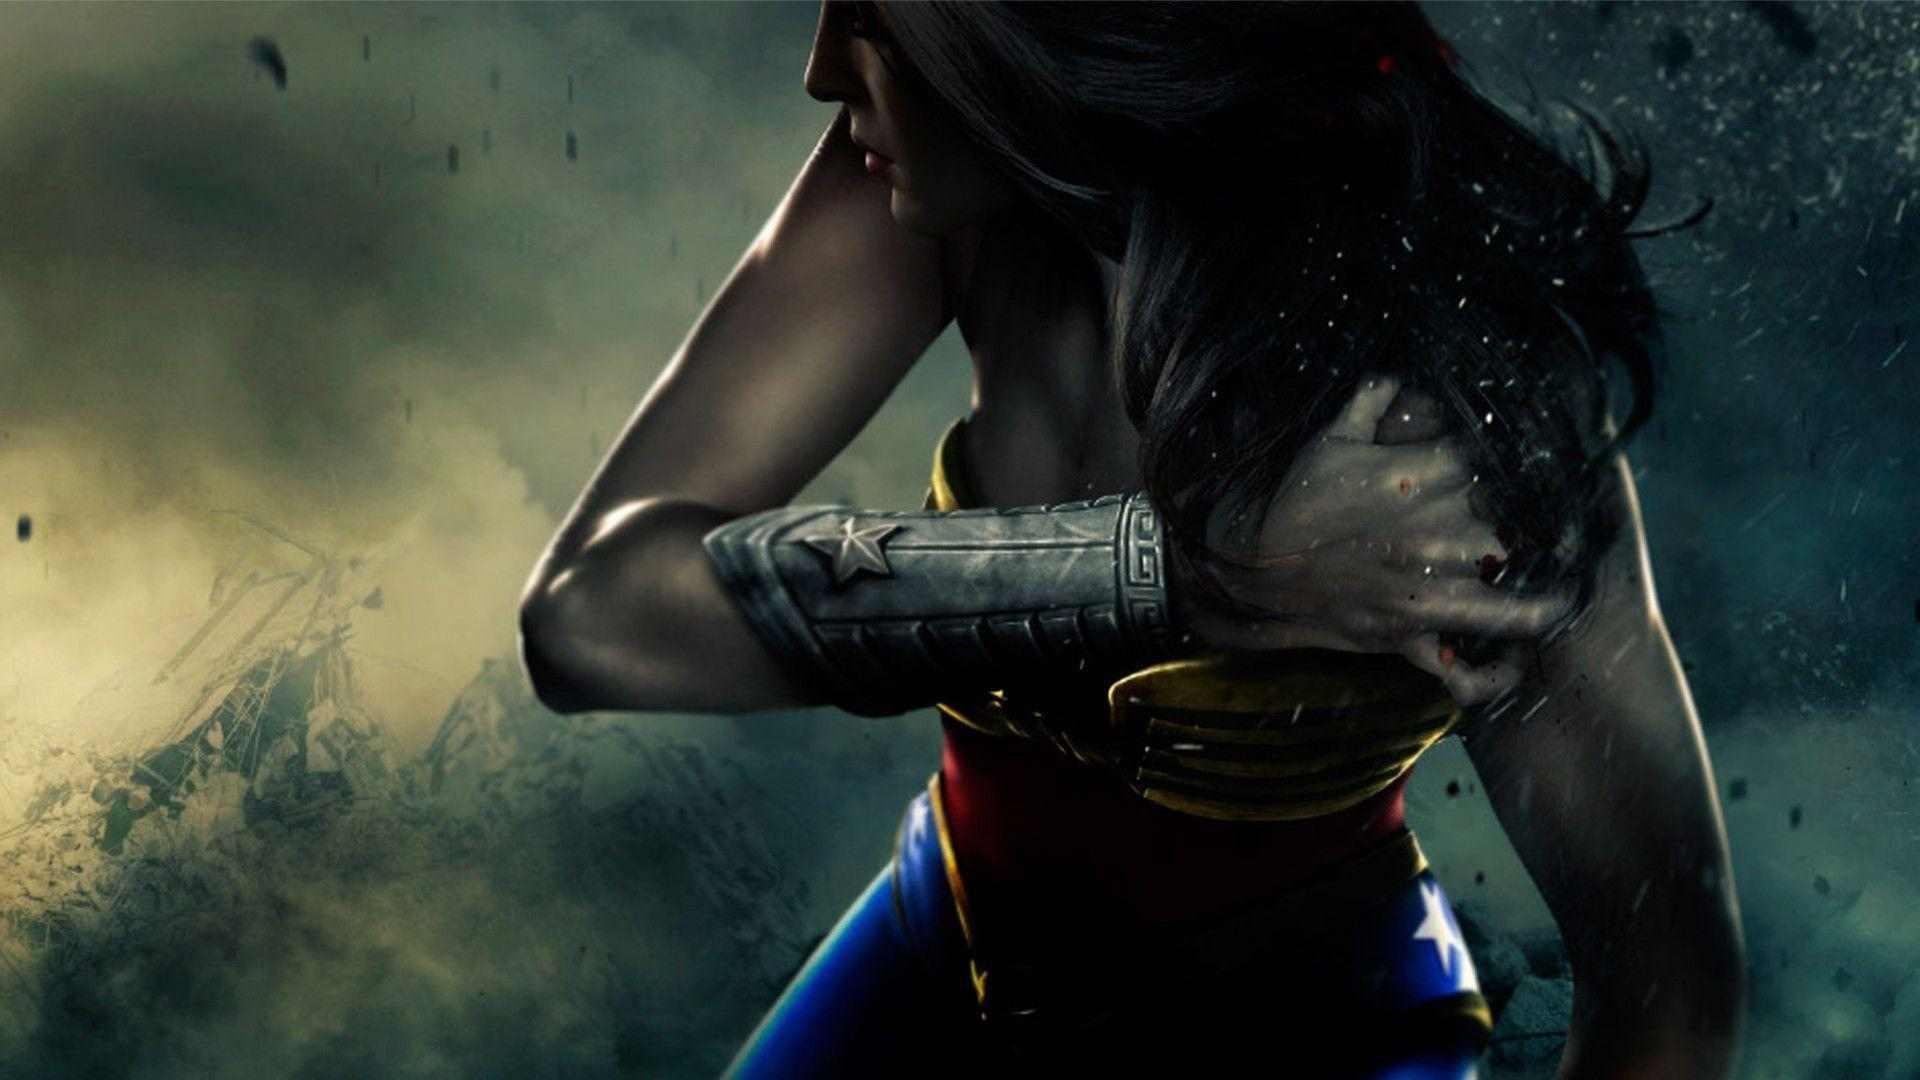 Wonder Woman Wallpaper Desktop ~ Sdeerwallpaper